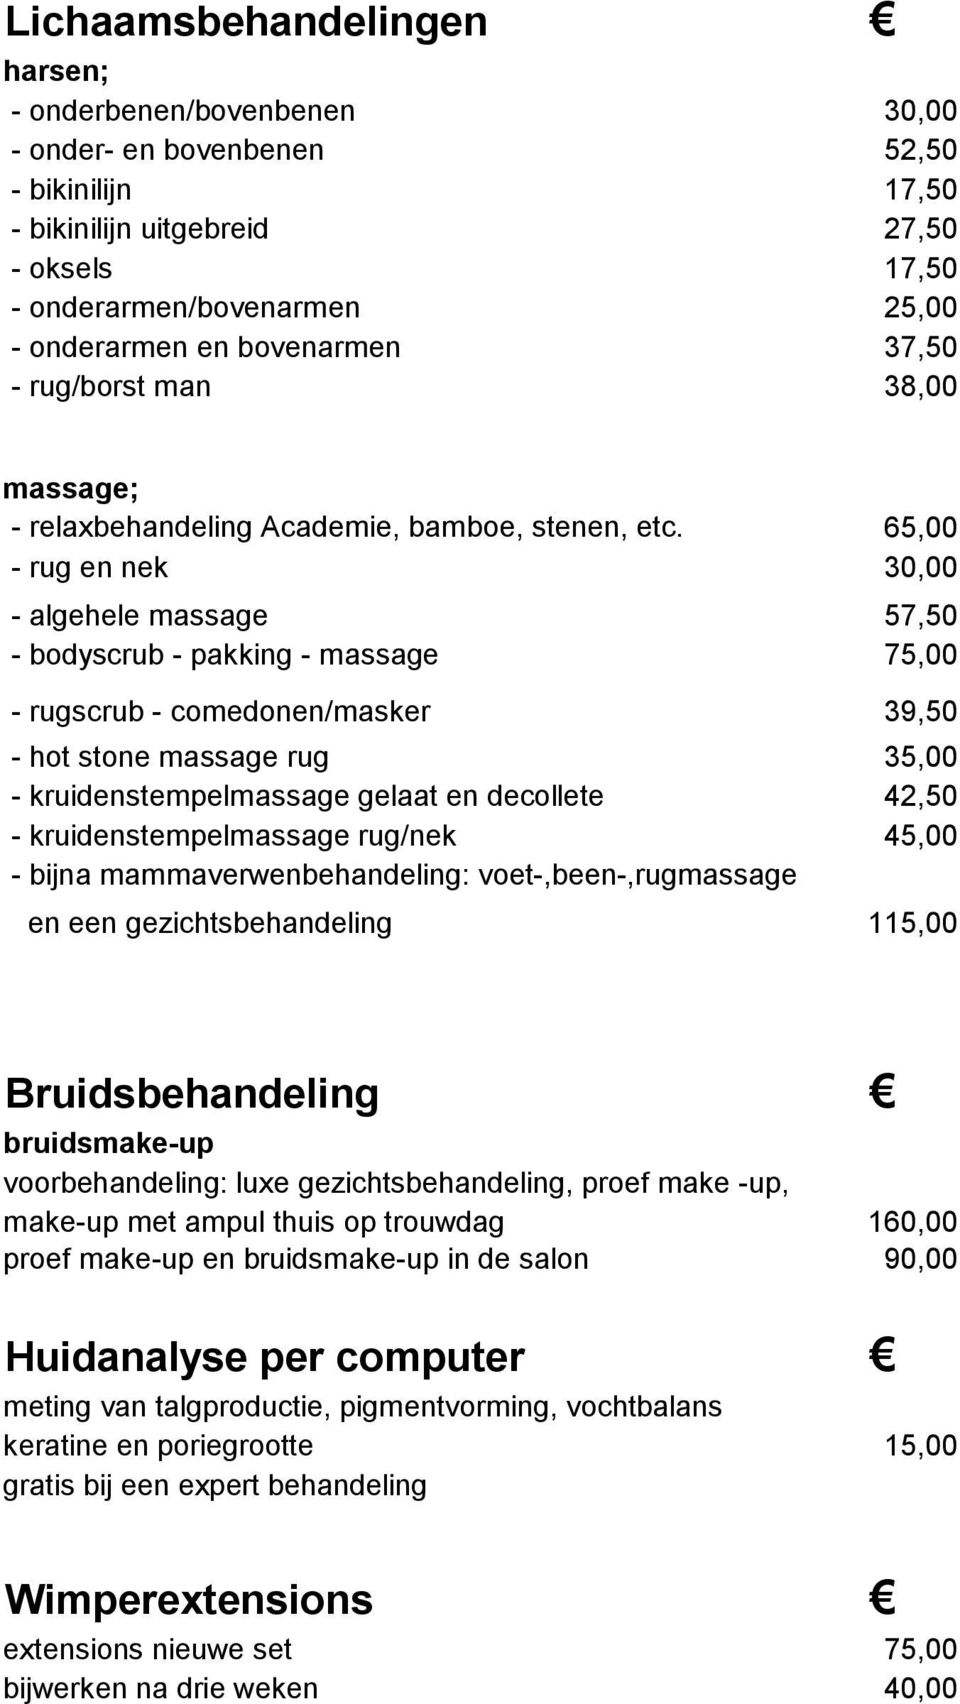 65,00 - rug en nek 30,00 - algehele massage 57,50 - bodyscrub - pakking - massage 75,00 - rugscrub - comedonen/masker 39,50 - hot stone massage rug 35,00 - kruidenstempelmassage gelaat en decollete